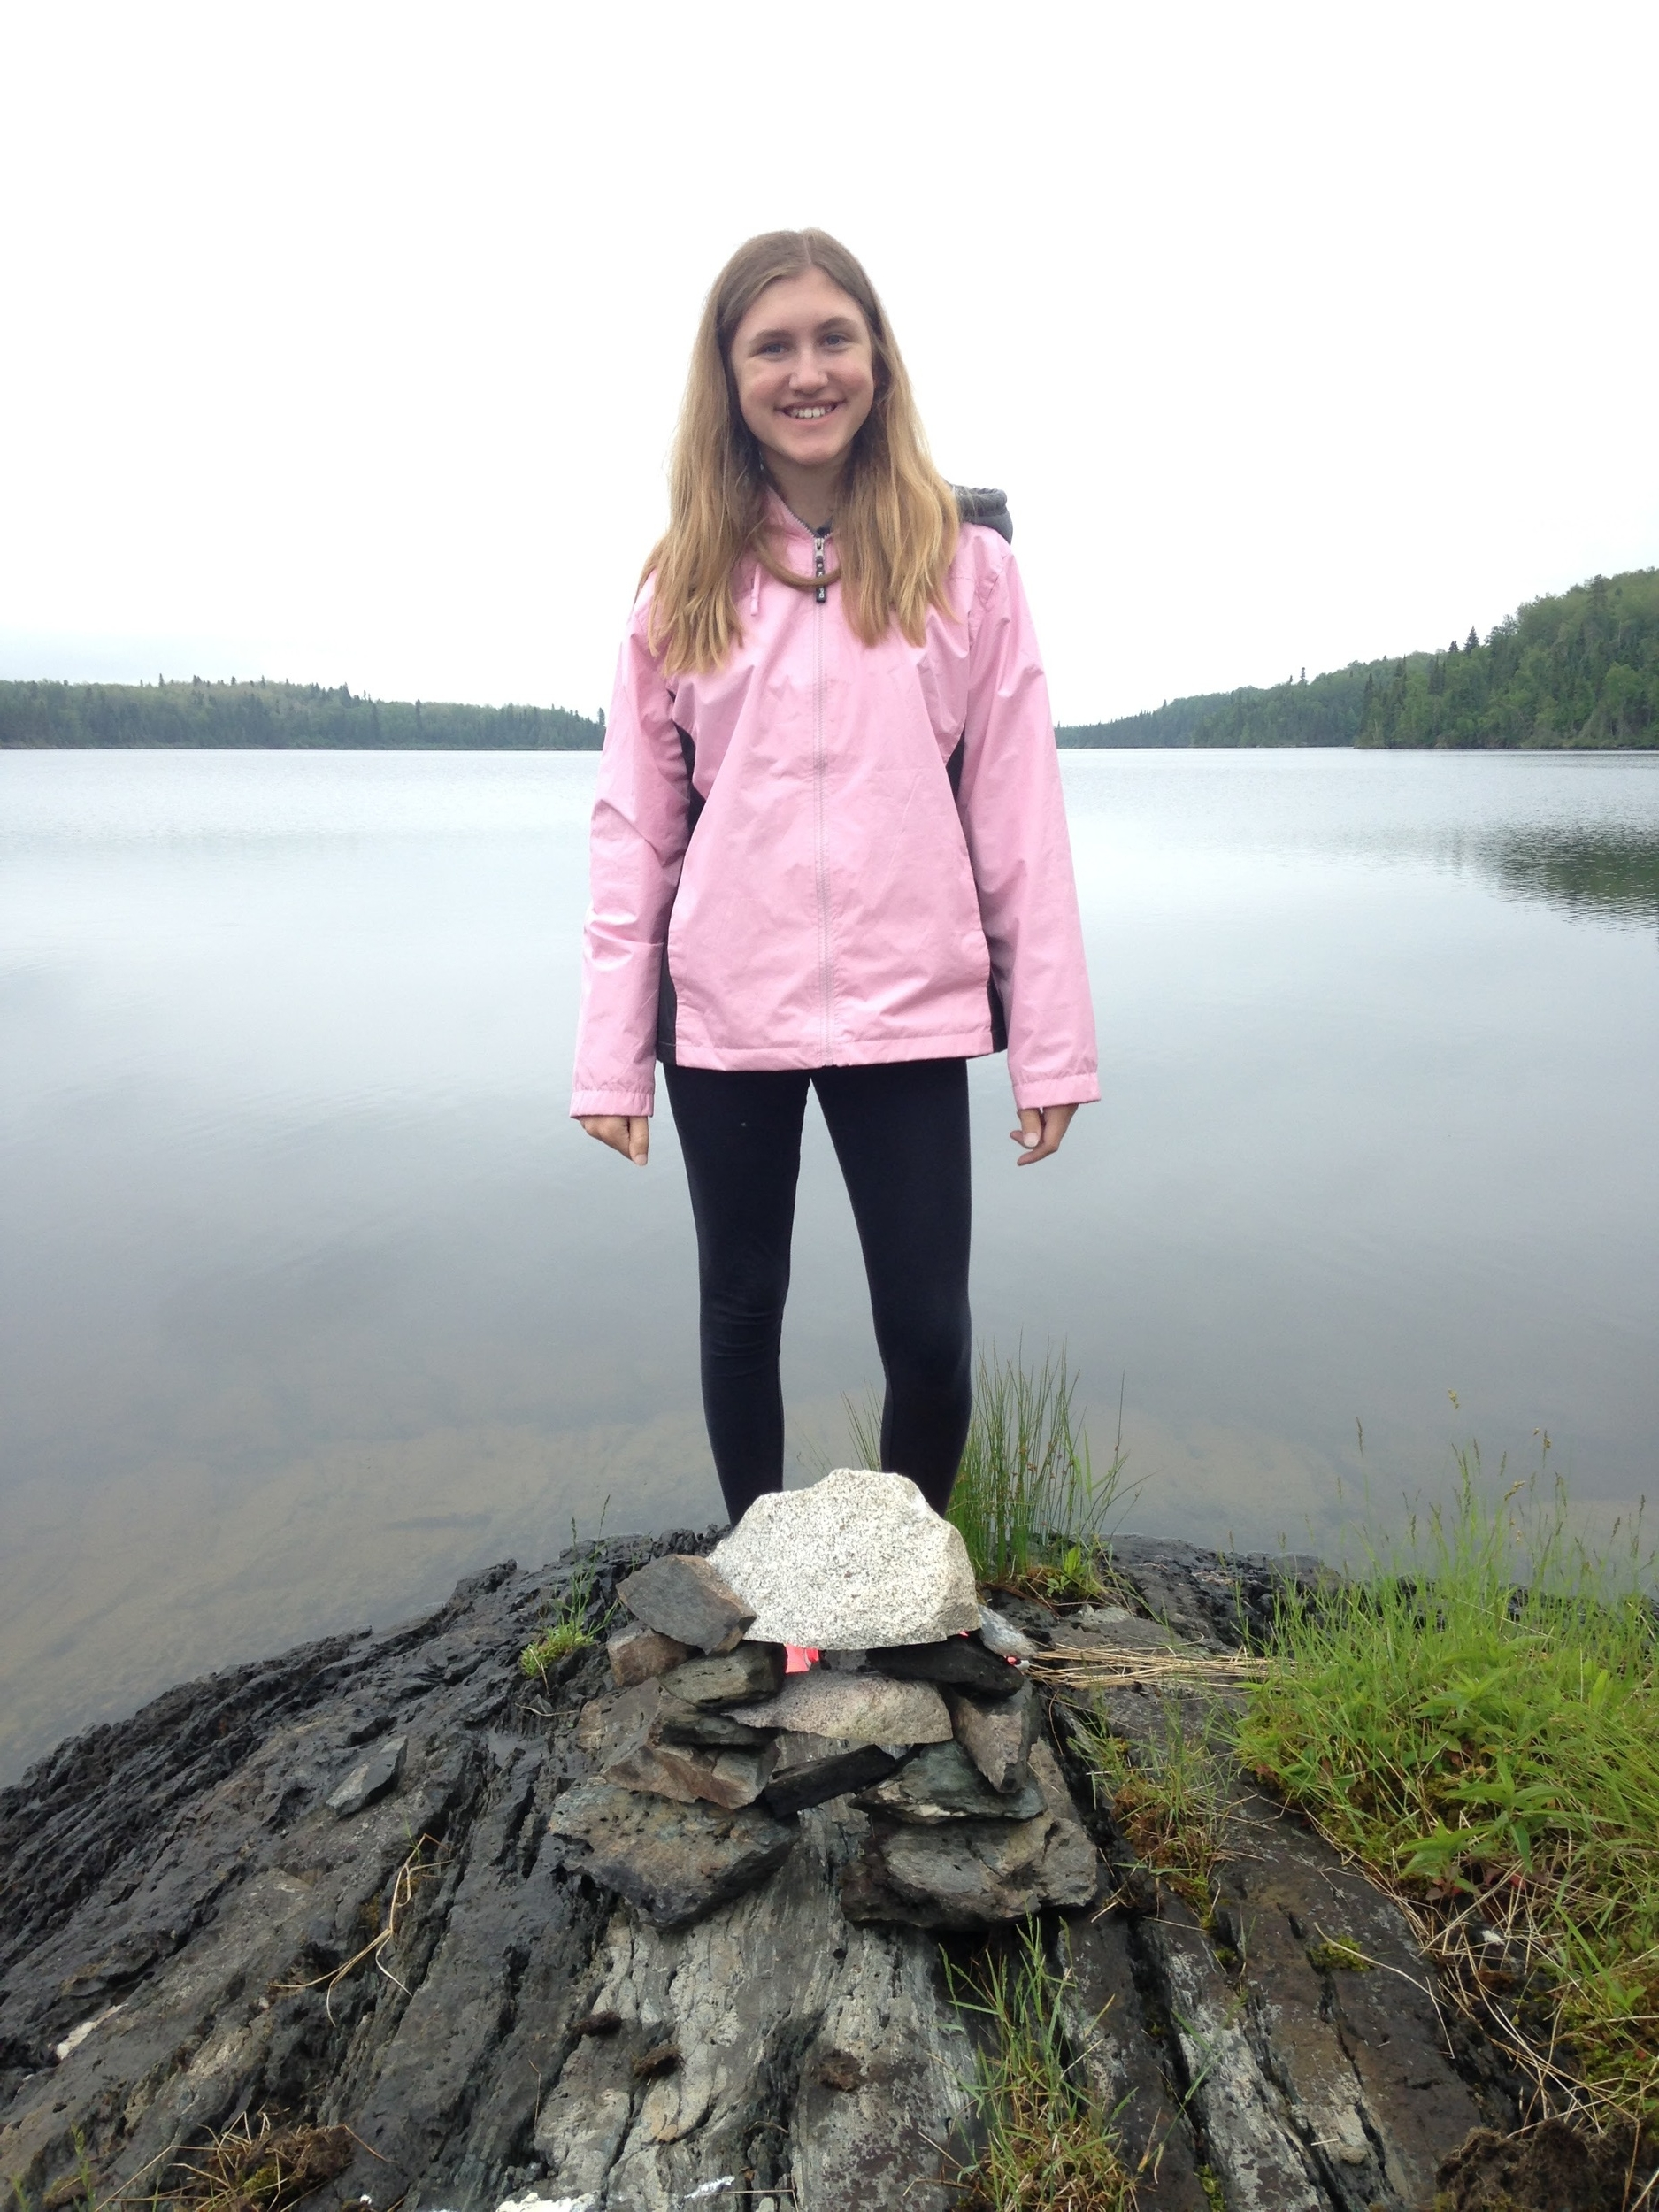 Ashlee-with-Rock-Pile-Canada.jpg